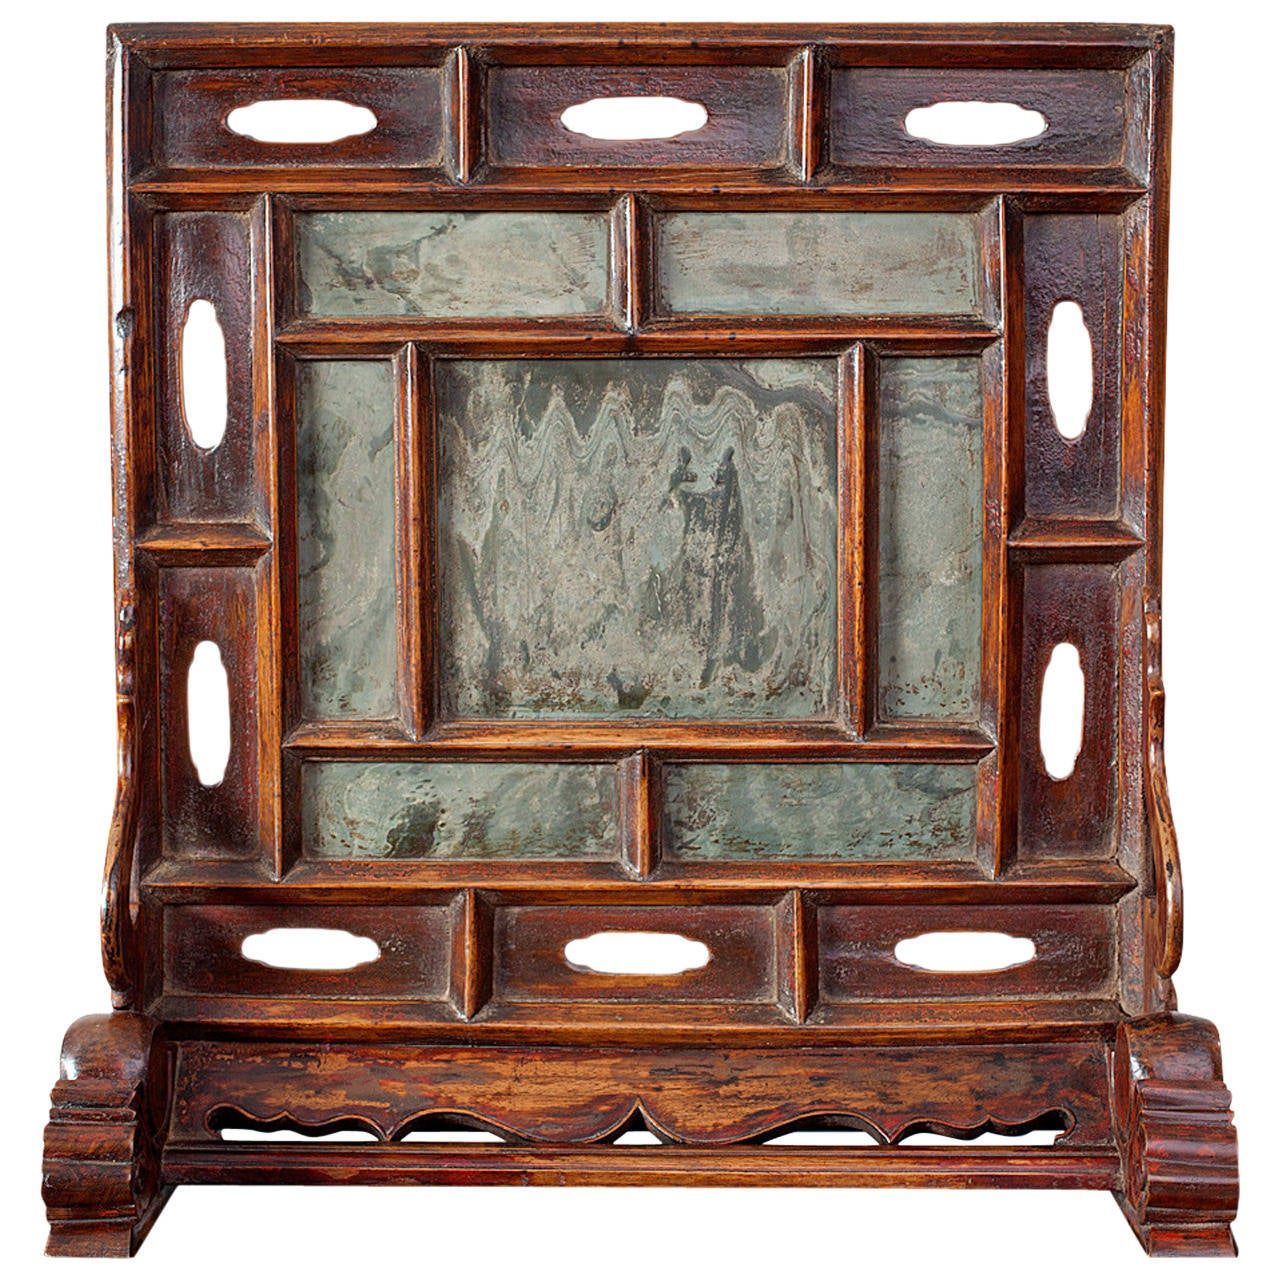 Rare ming dynasty chinese dreamstone table screen with for Chinese art furniture